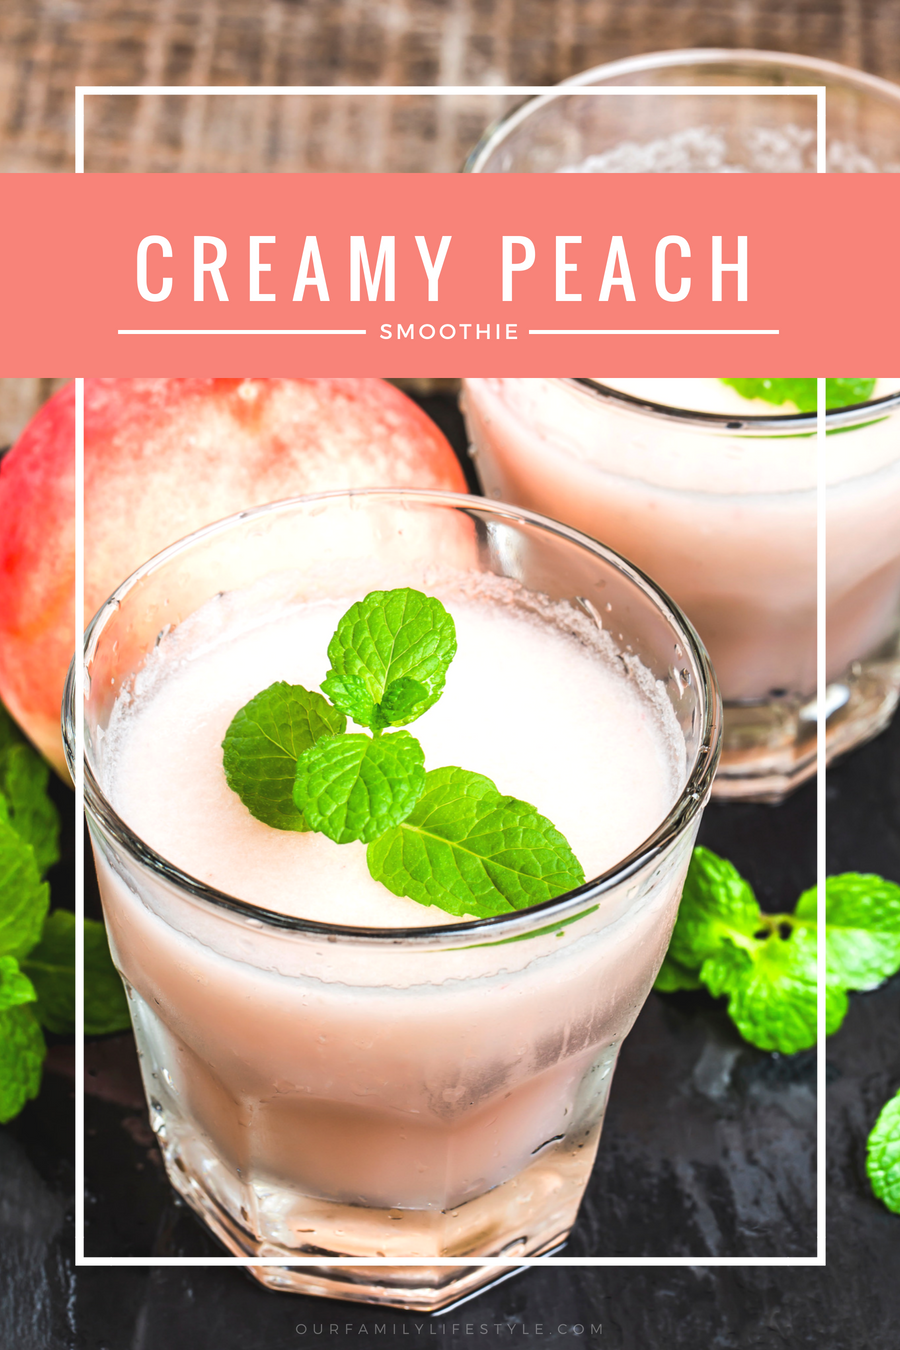 Refreshing Summertime Creamy Peach Smoothie